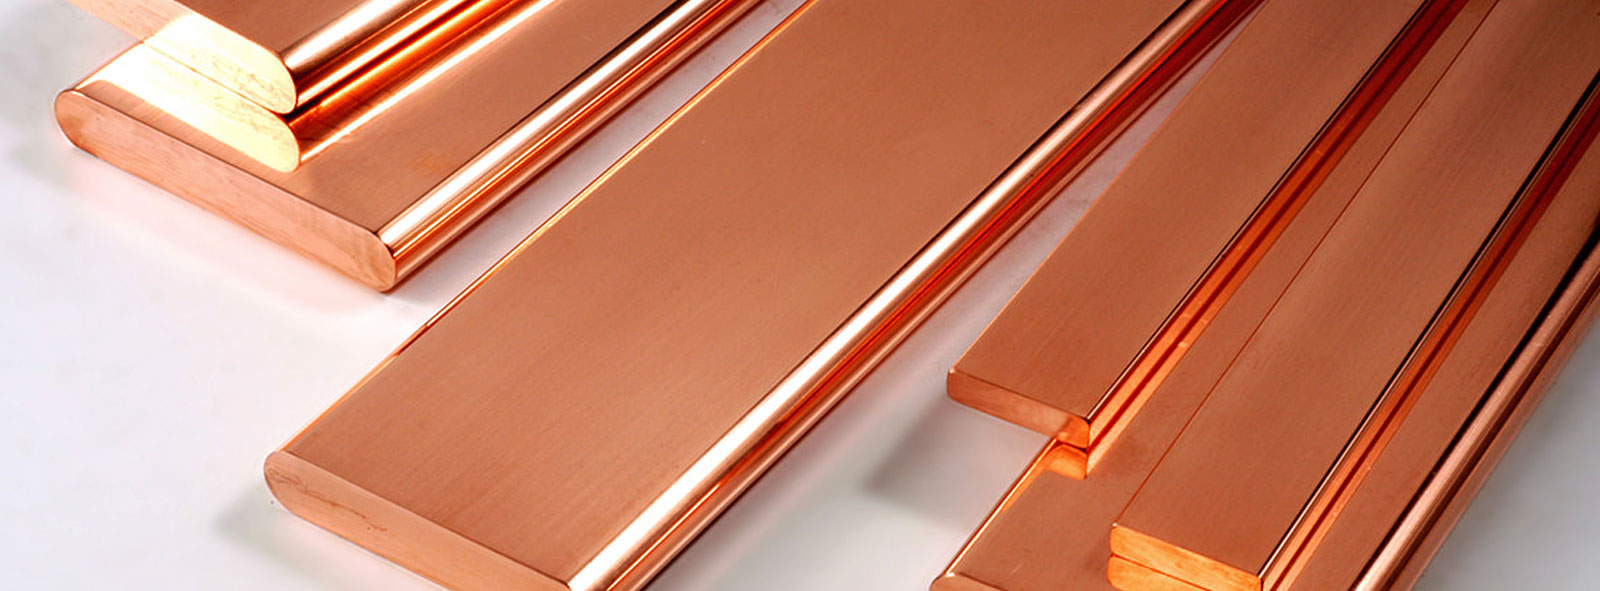 copper-busbar-manufacturers-india